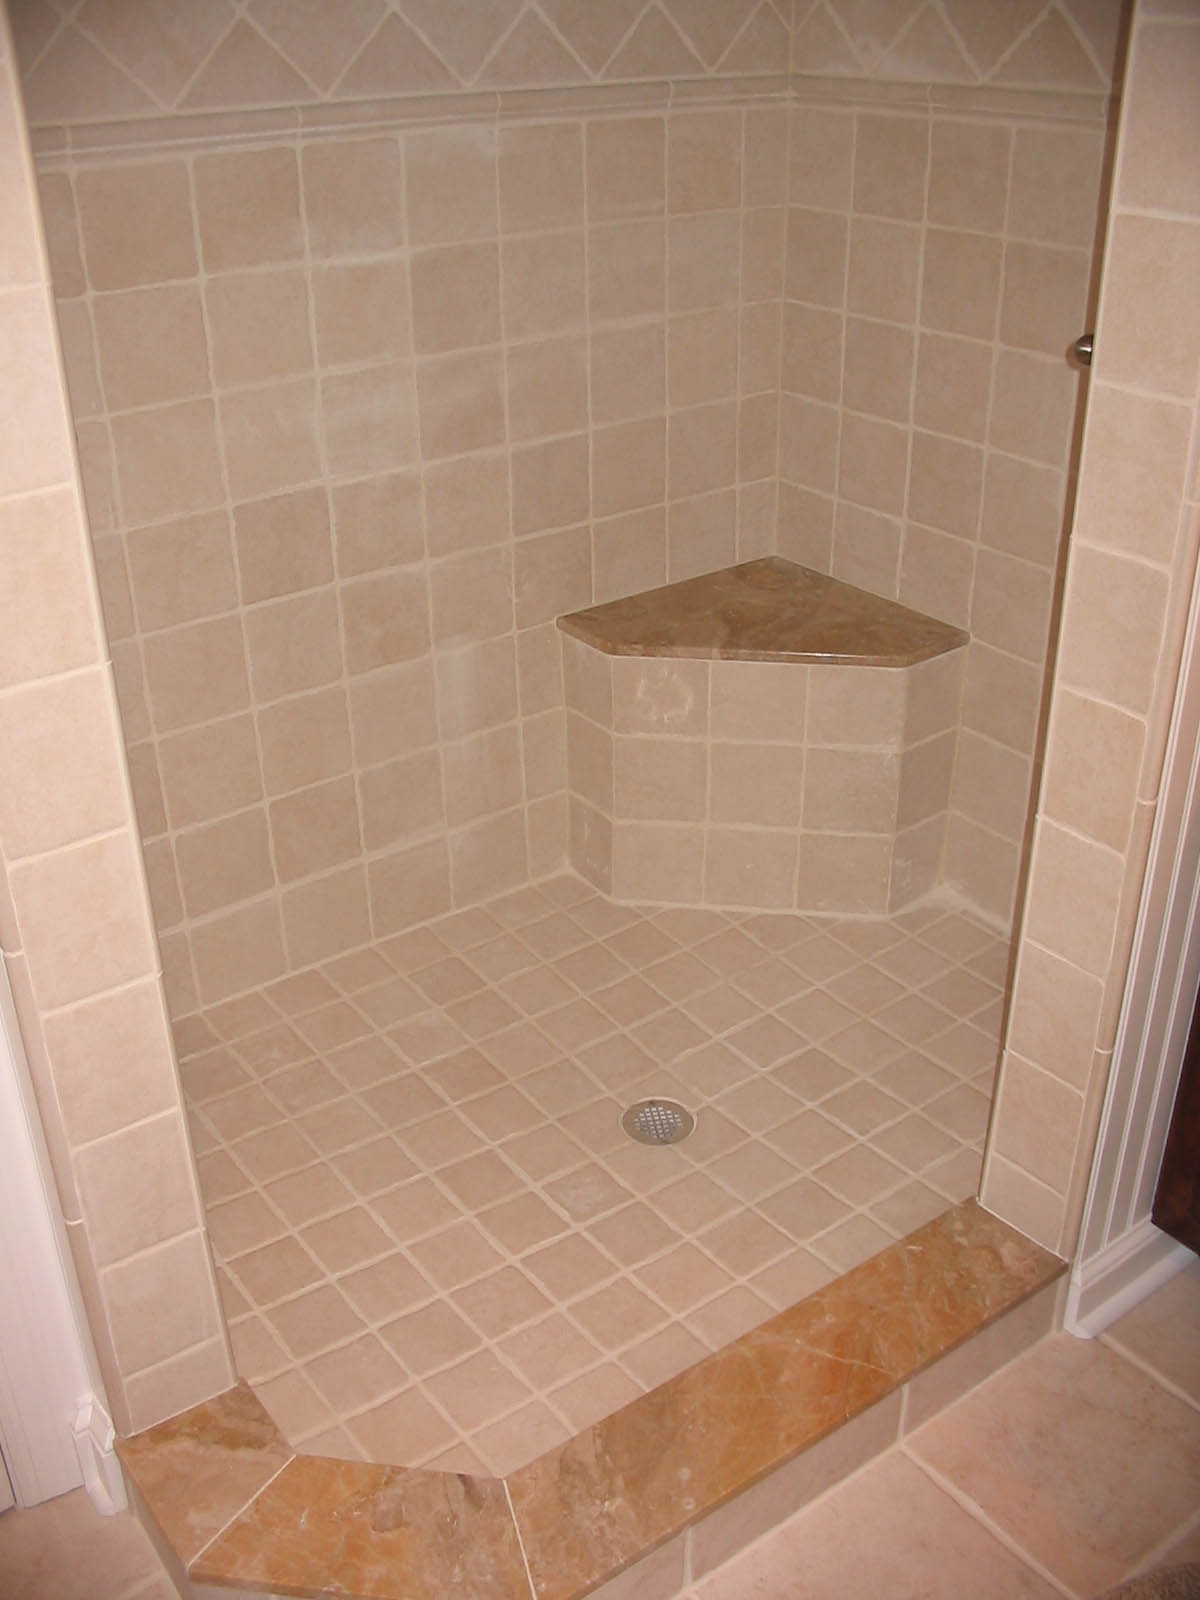 Decorative bathroom tile -  M Bathroom Tile Designs On A Budget Bathroom